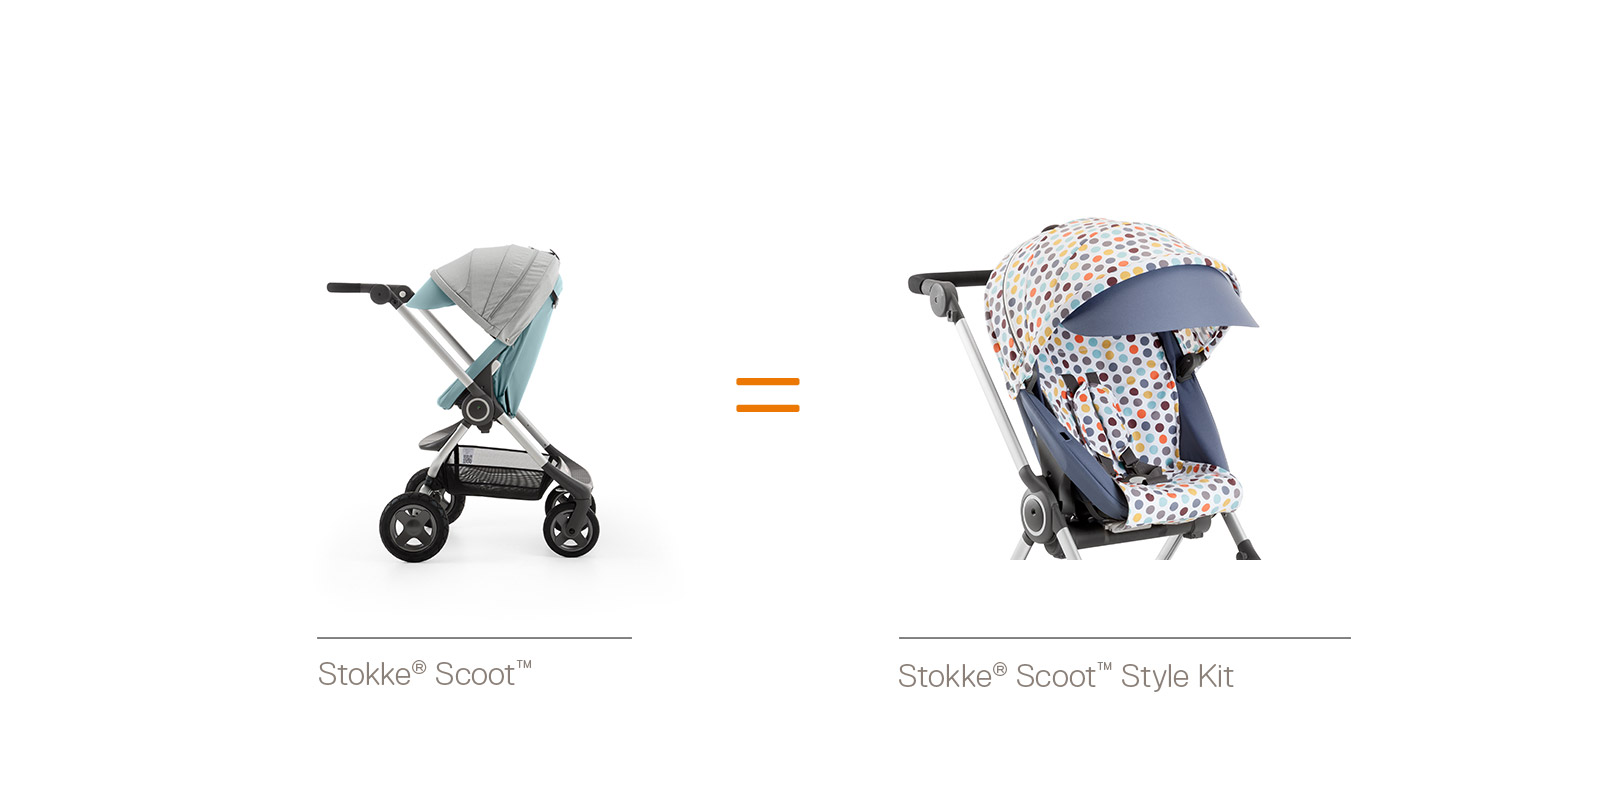 stokke high chair accessories uk whole foods massage emea scoot style kit promotion 2015